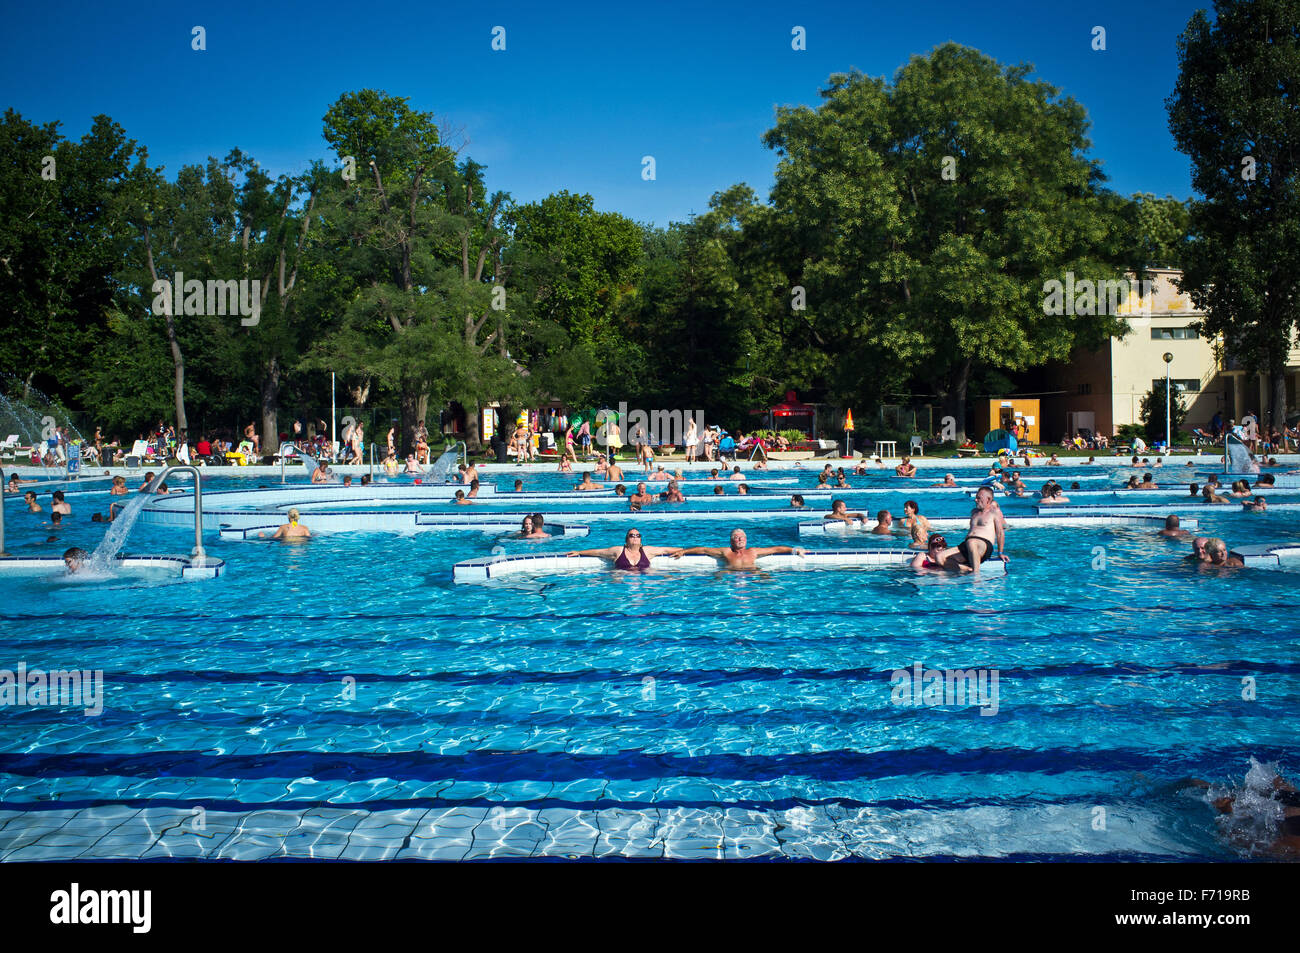 Margaret island swimming pool budapest spa stock photos margaret island swimming pool budapest for Margaret island budapest swimming pool